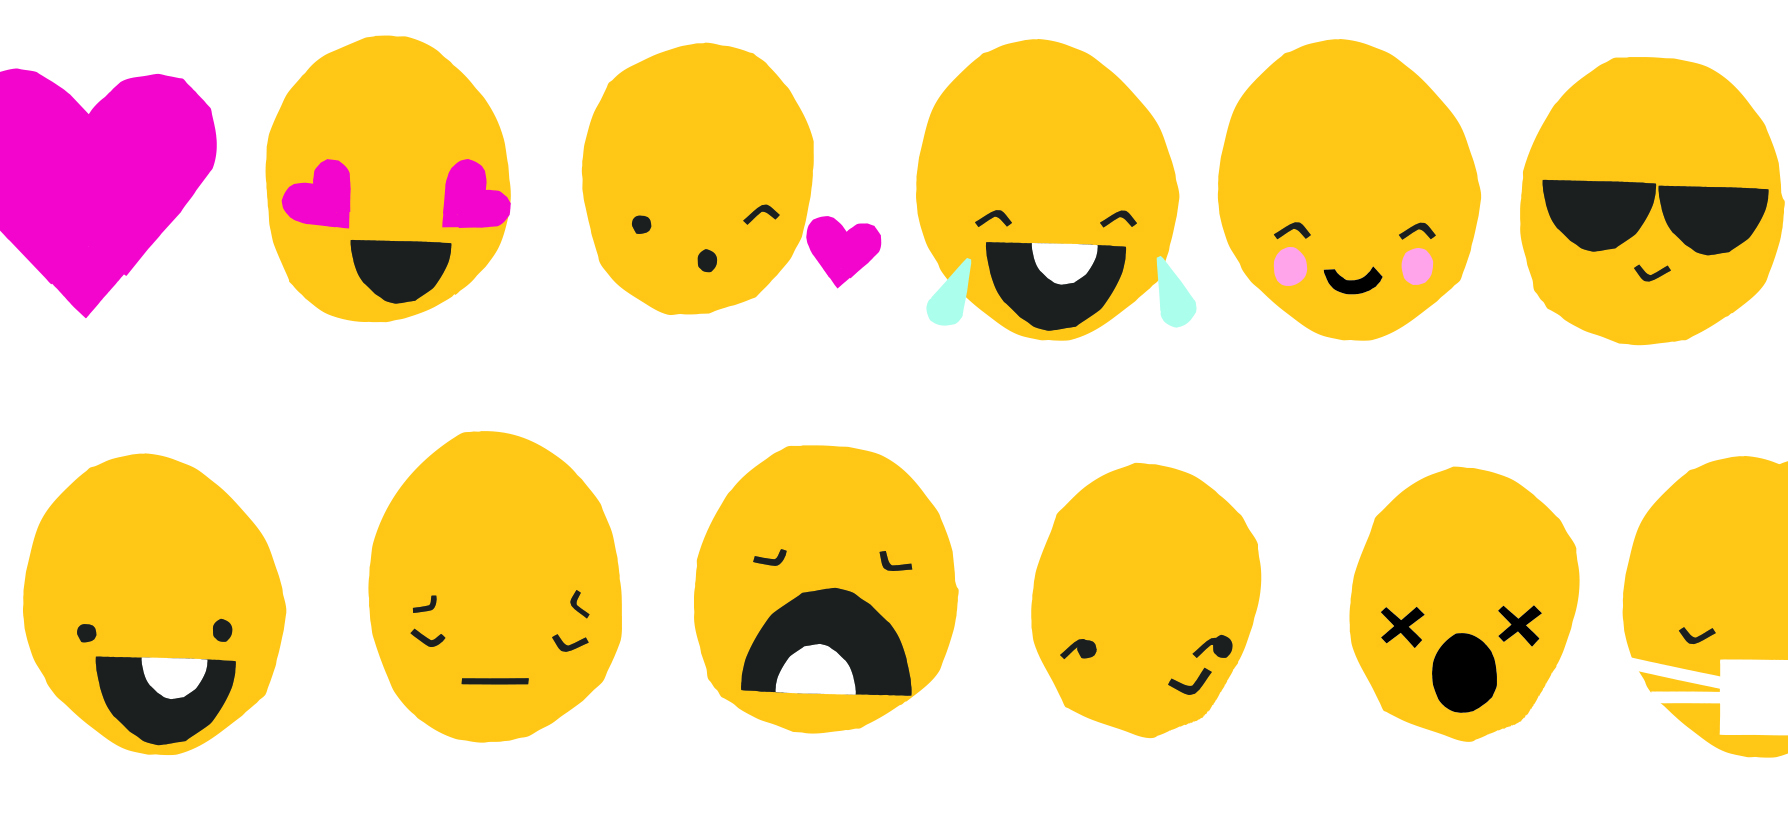 Display emojis2